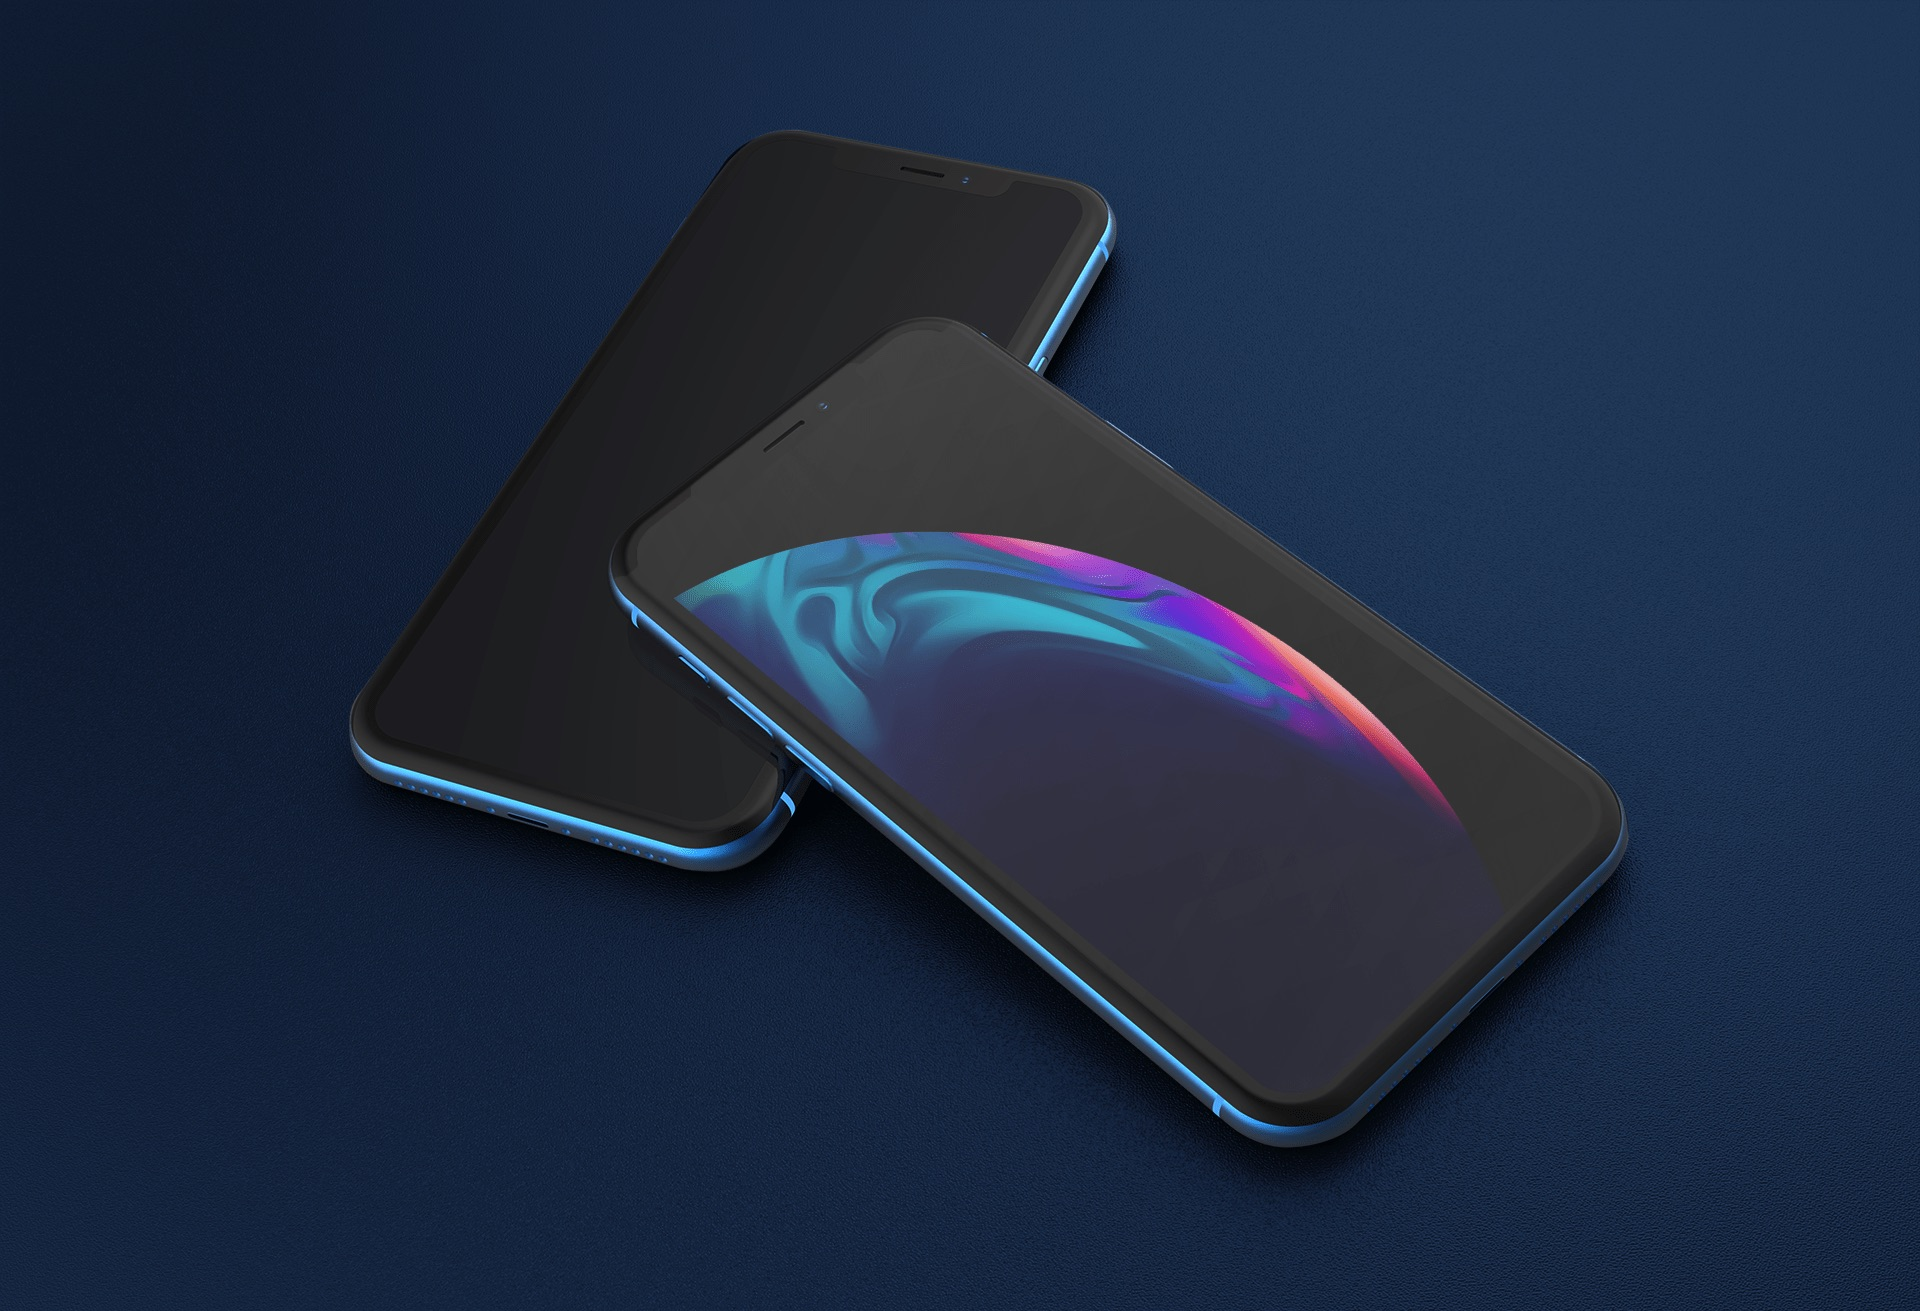 Apple unveiled planet-like wallpapers with their iPhone XS and iPhone XR. Since, they have become a popular wallpaper style in the community.